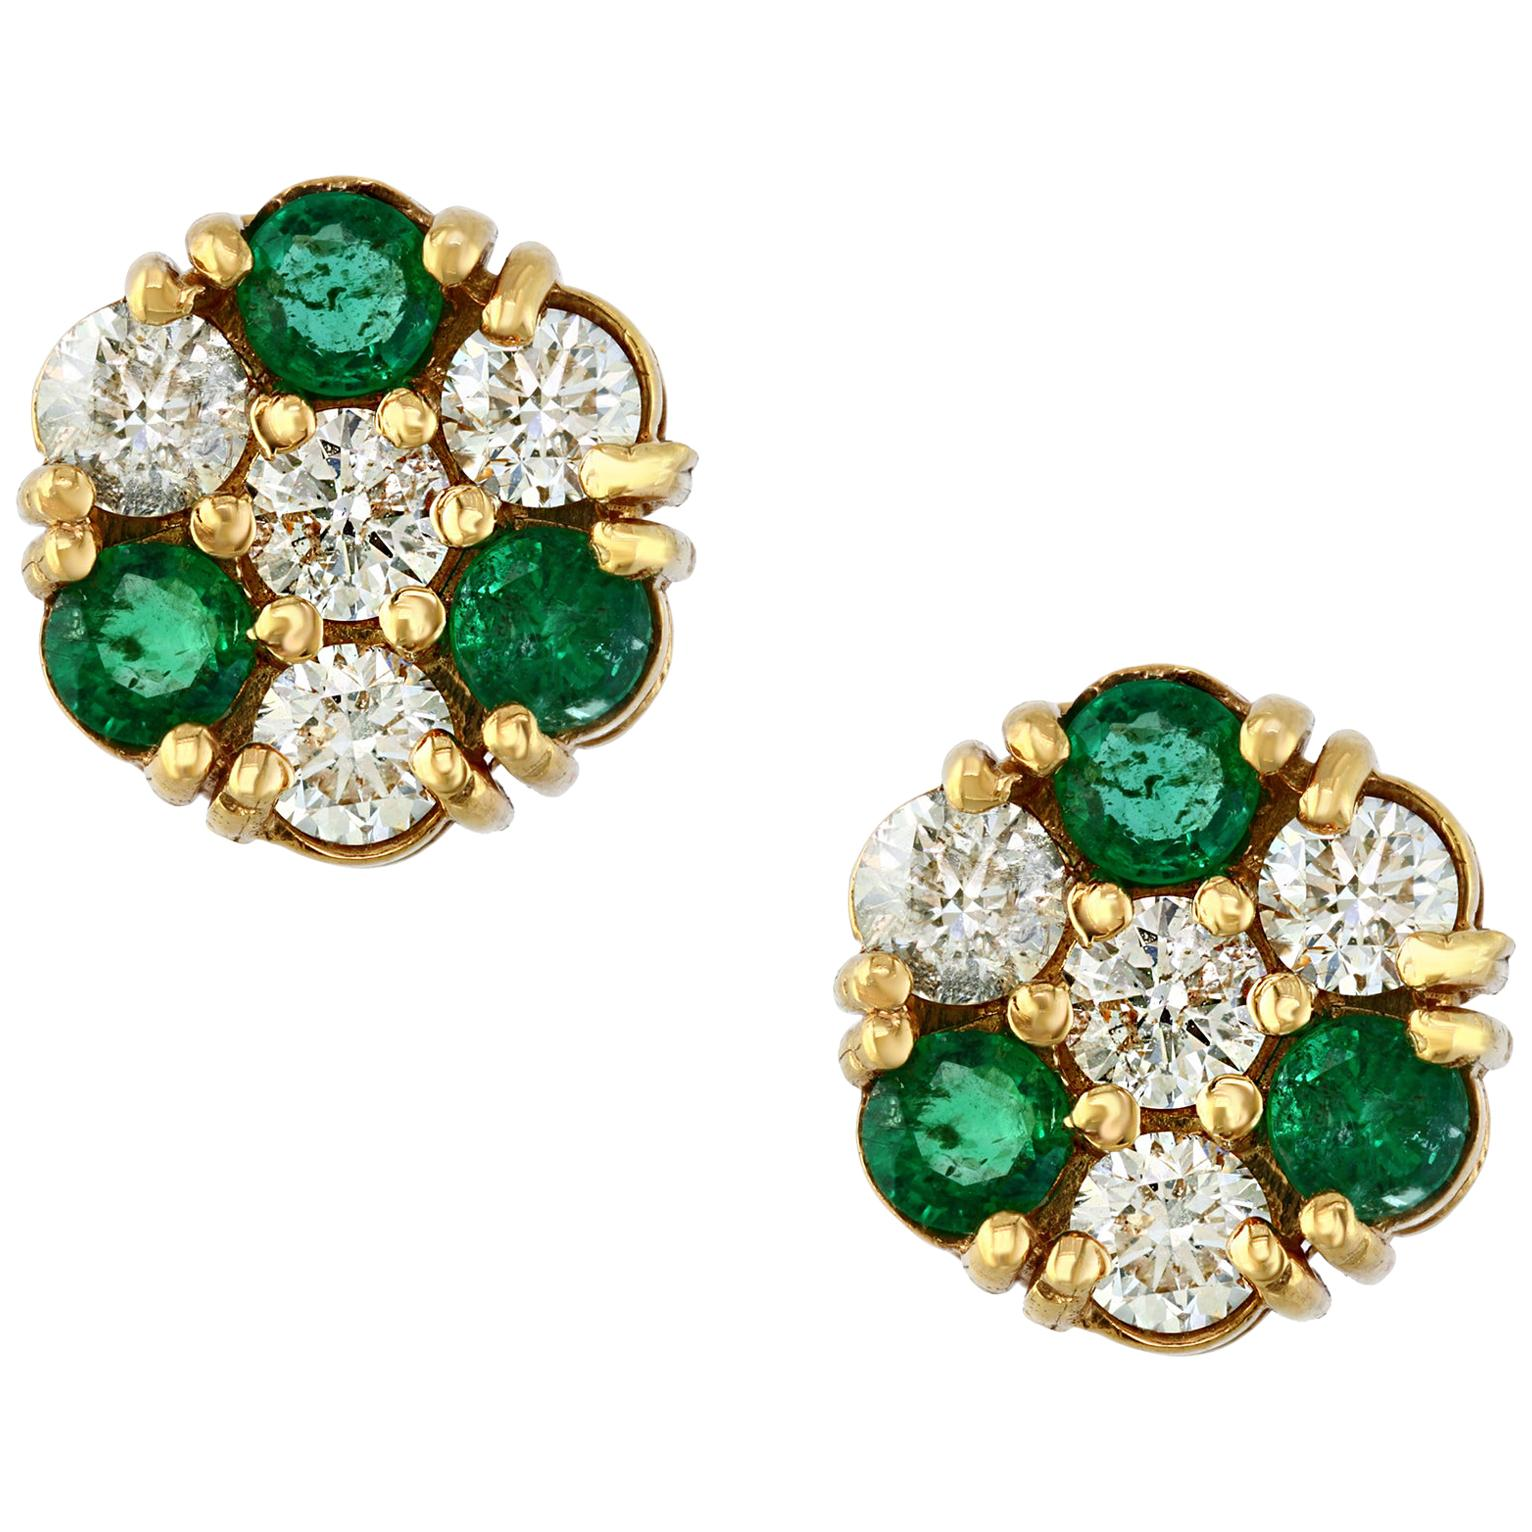 1.5 Carat Emerald and 2 Carat Diamonds Flower Post Earrings 14 Karat Yellow Gold